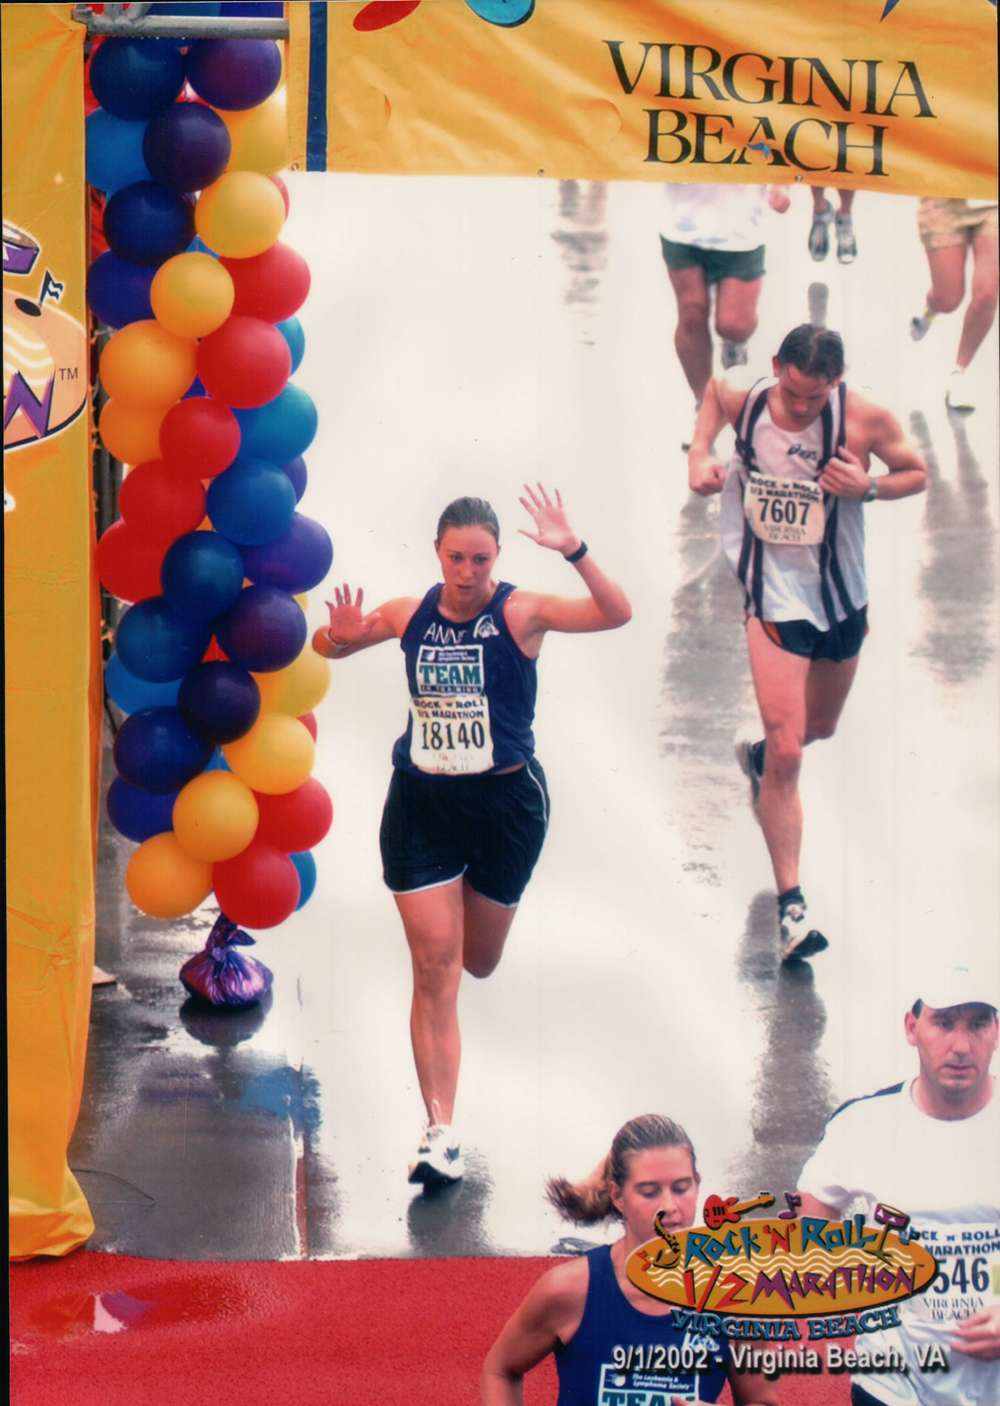 Crossing the finish line at my first half-marathon ever! Virginia Beach, September 2002